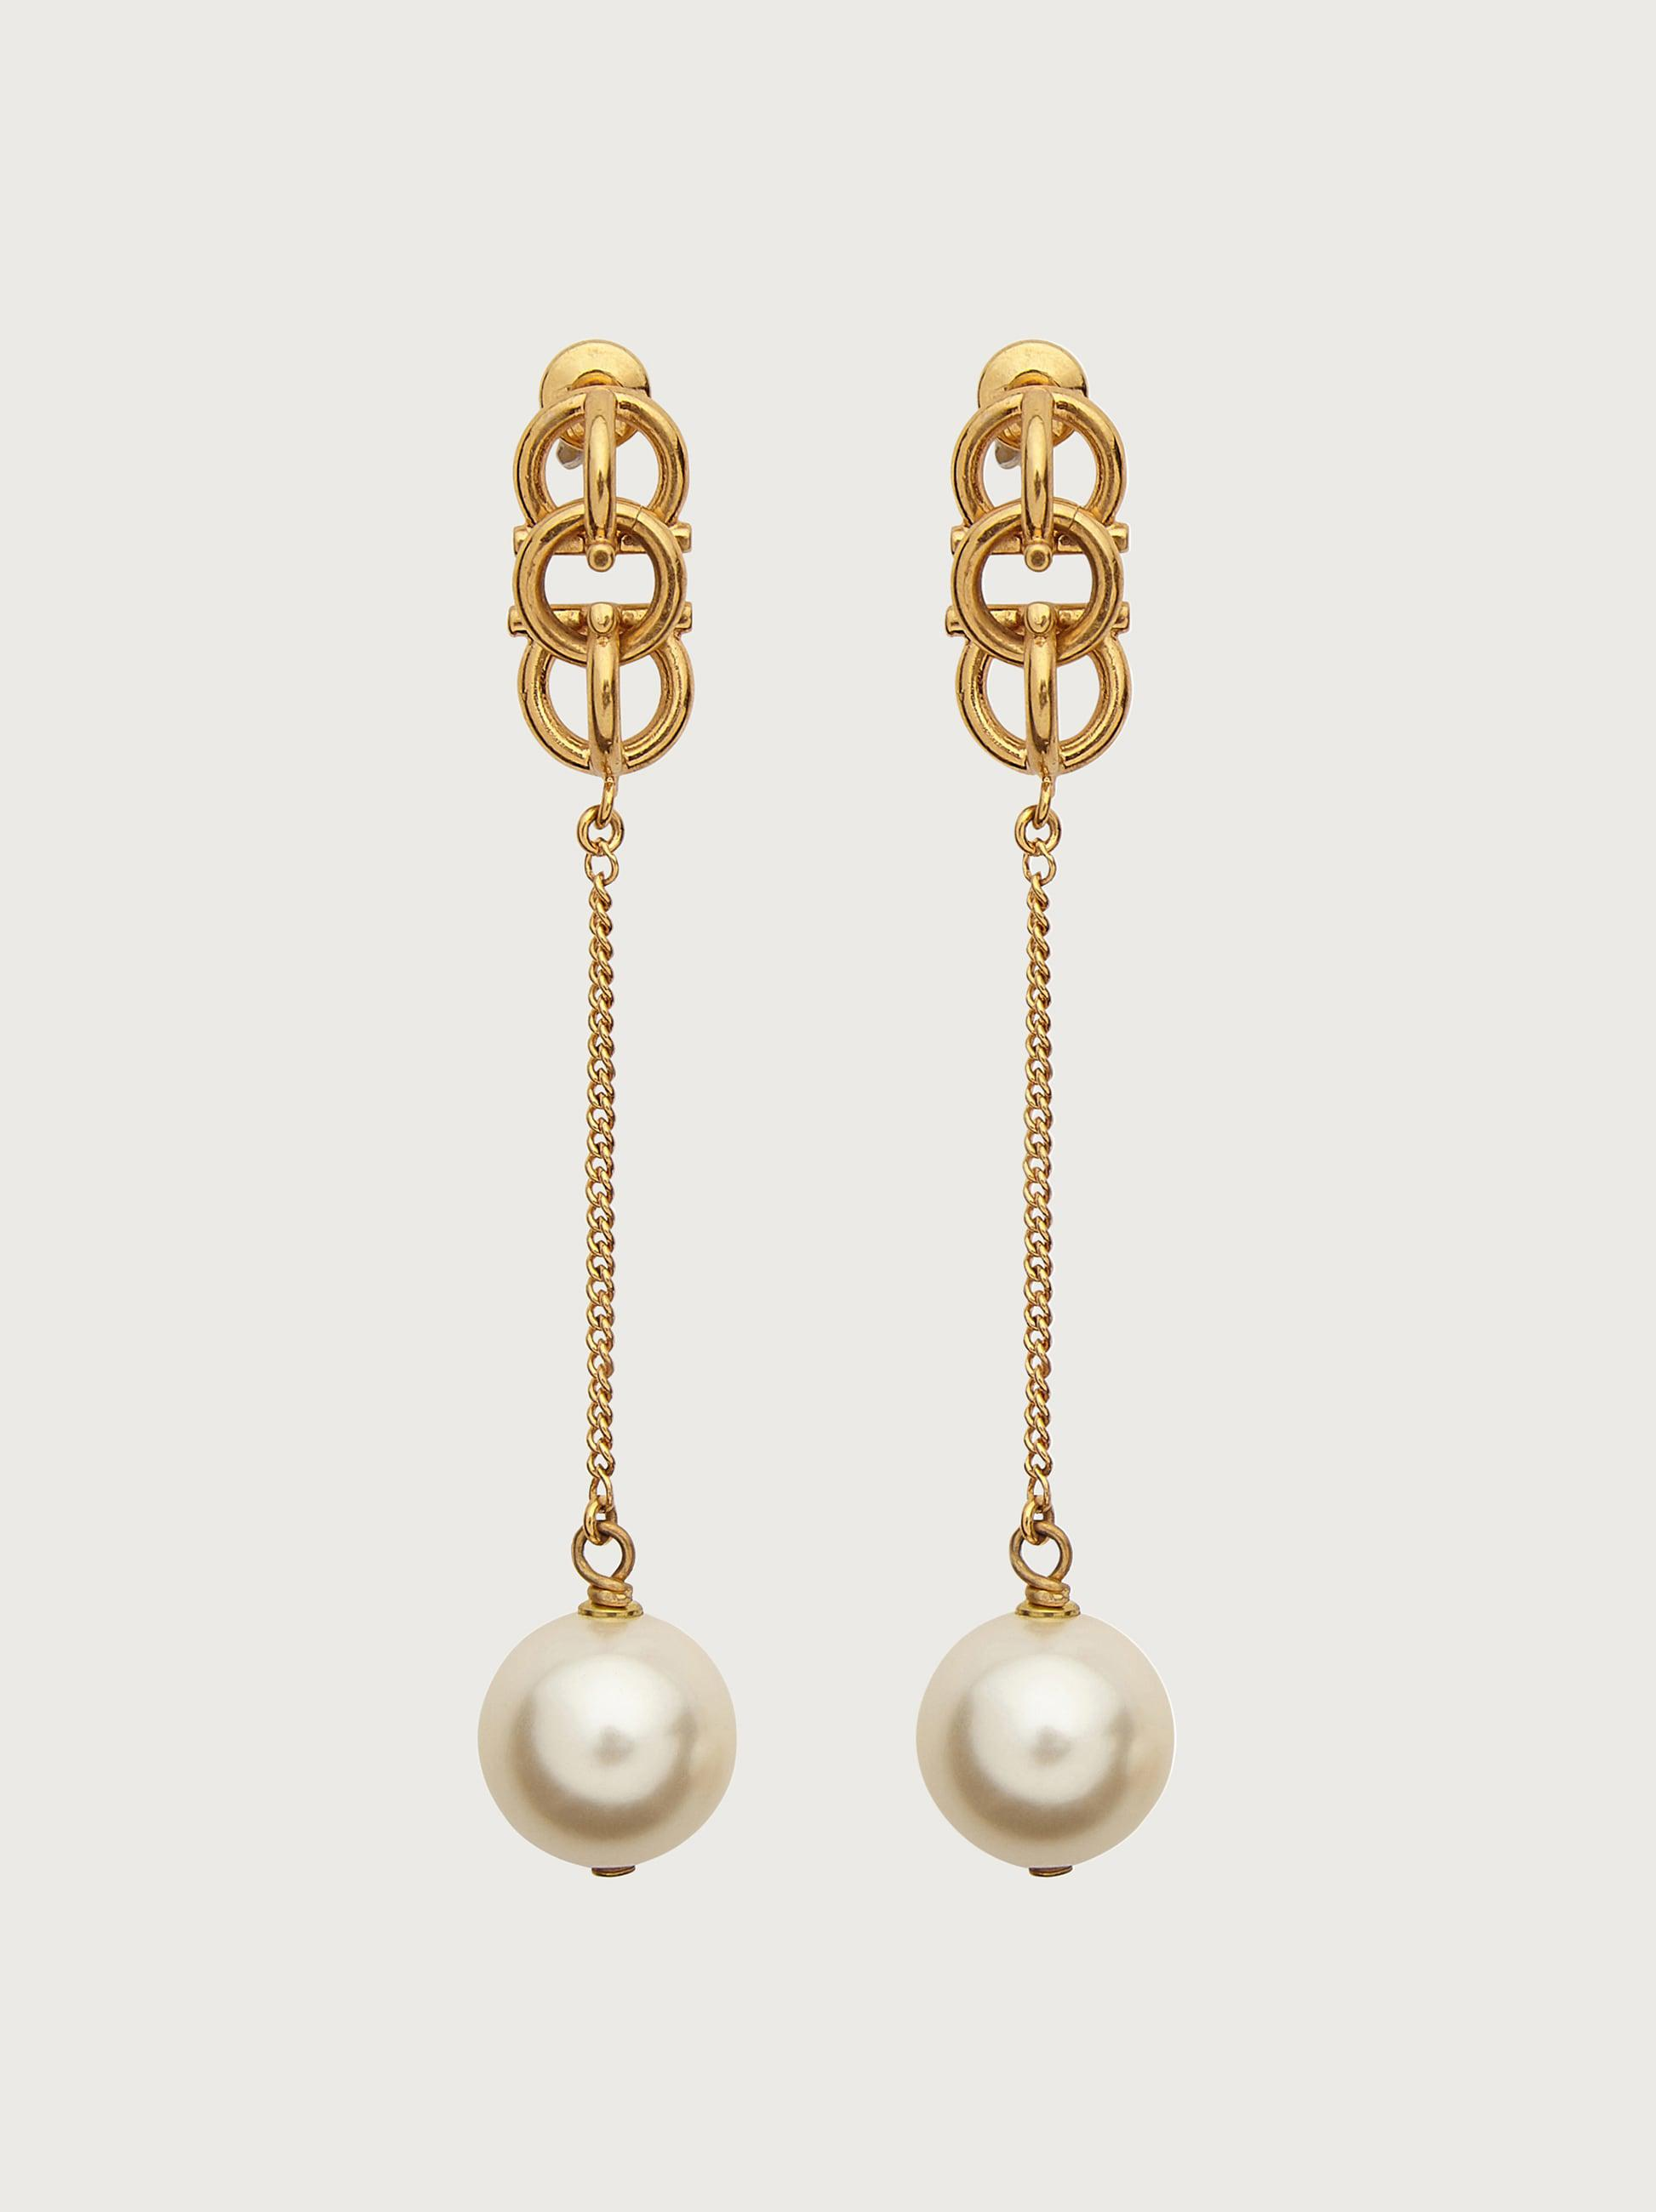 GANCIO 3D PENDANT EARRINGS WITH SYNTHETIC PEARLS